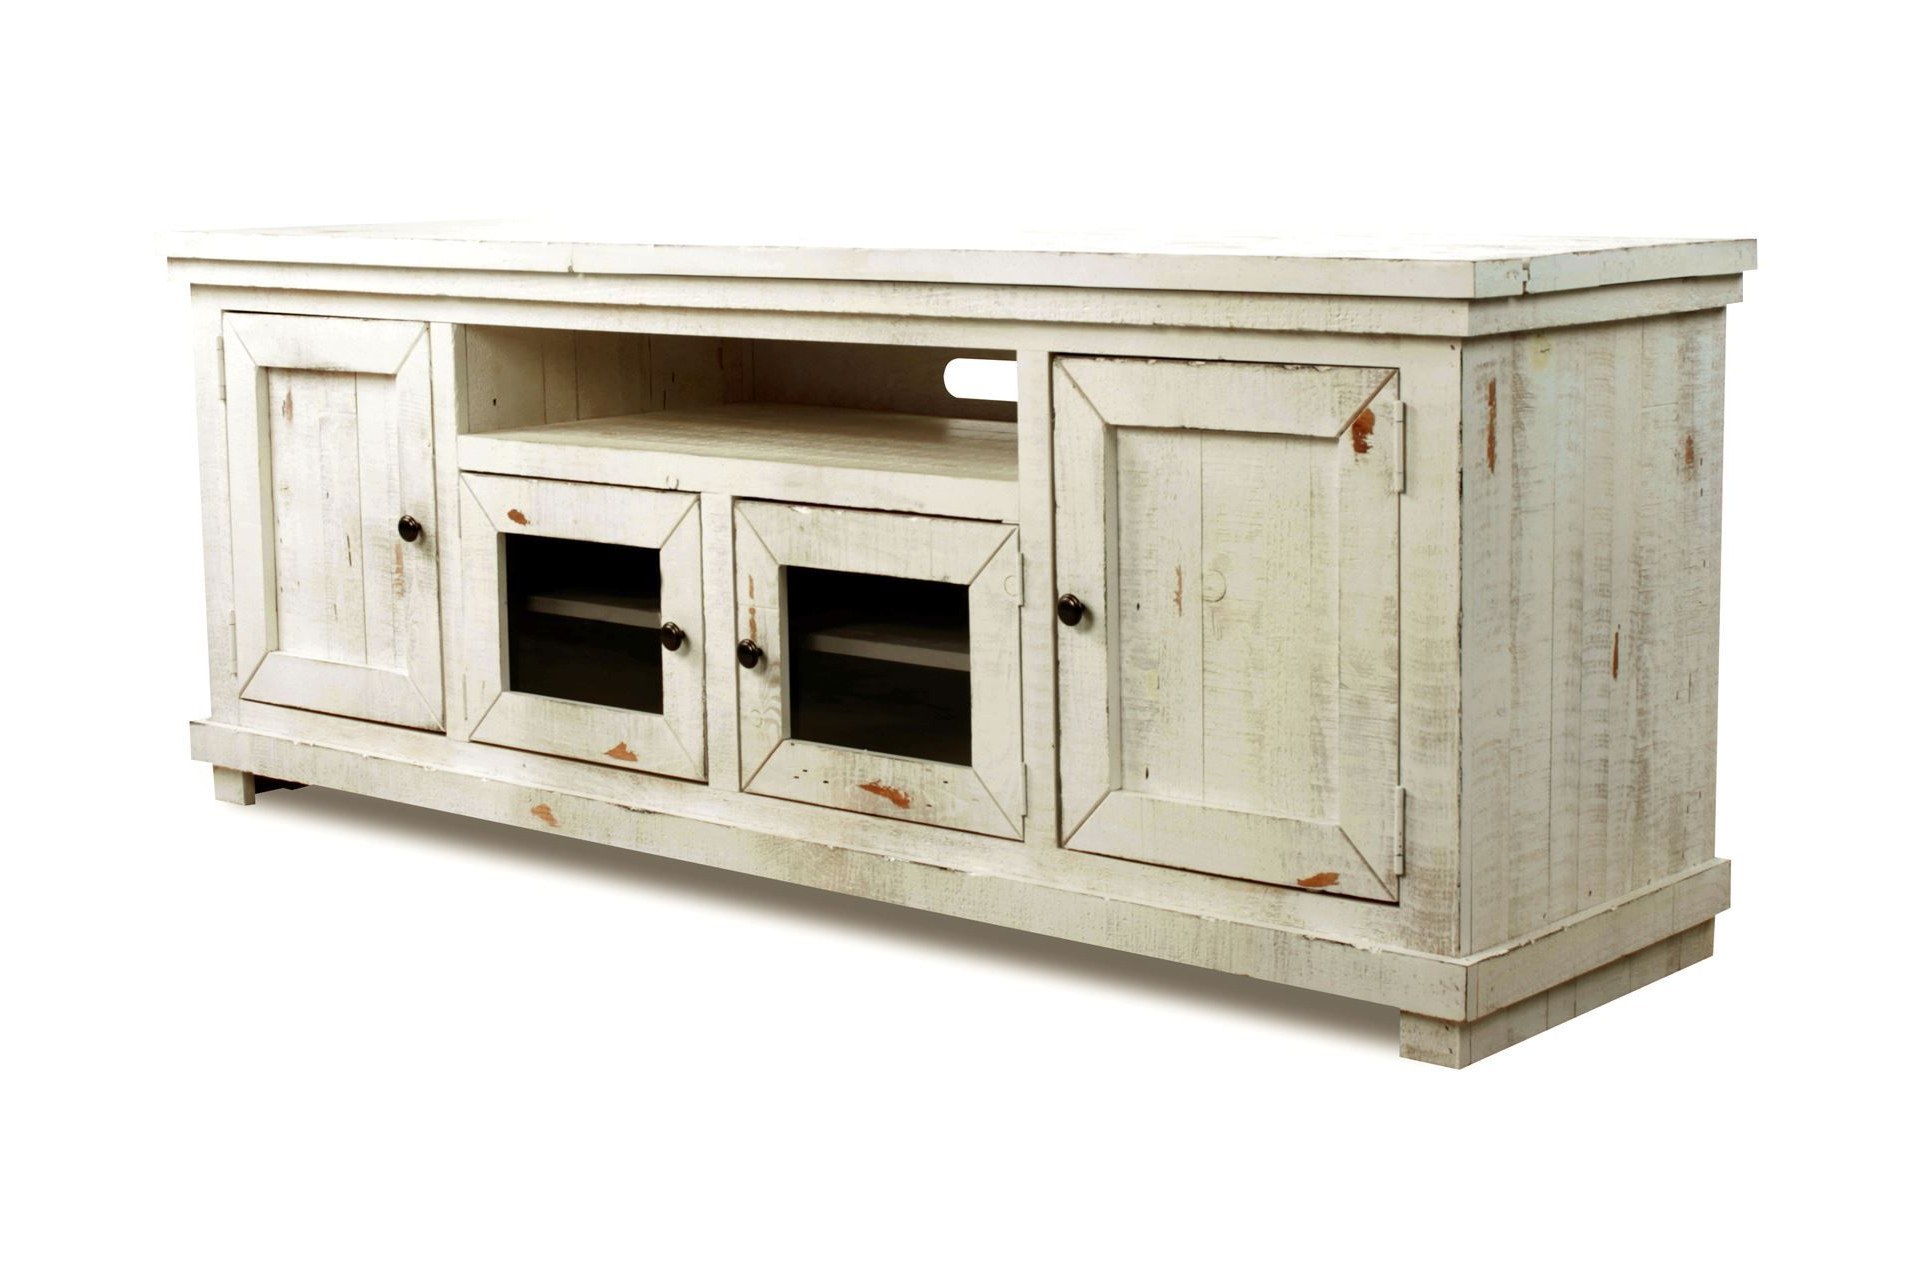 Sinclair White 74 Inch Tv Stand | Furniture Collection | Living Room Throughout Ducar 74 Inch Tv Stands (View 18 of 20)